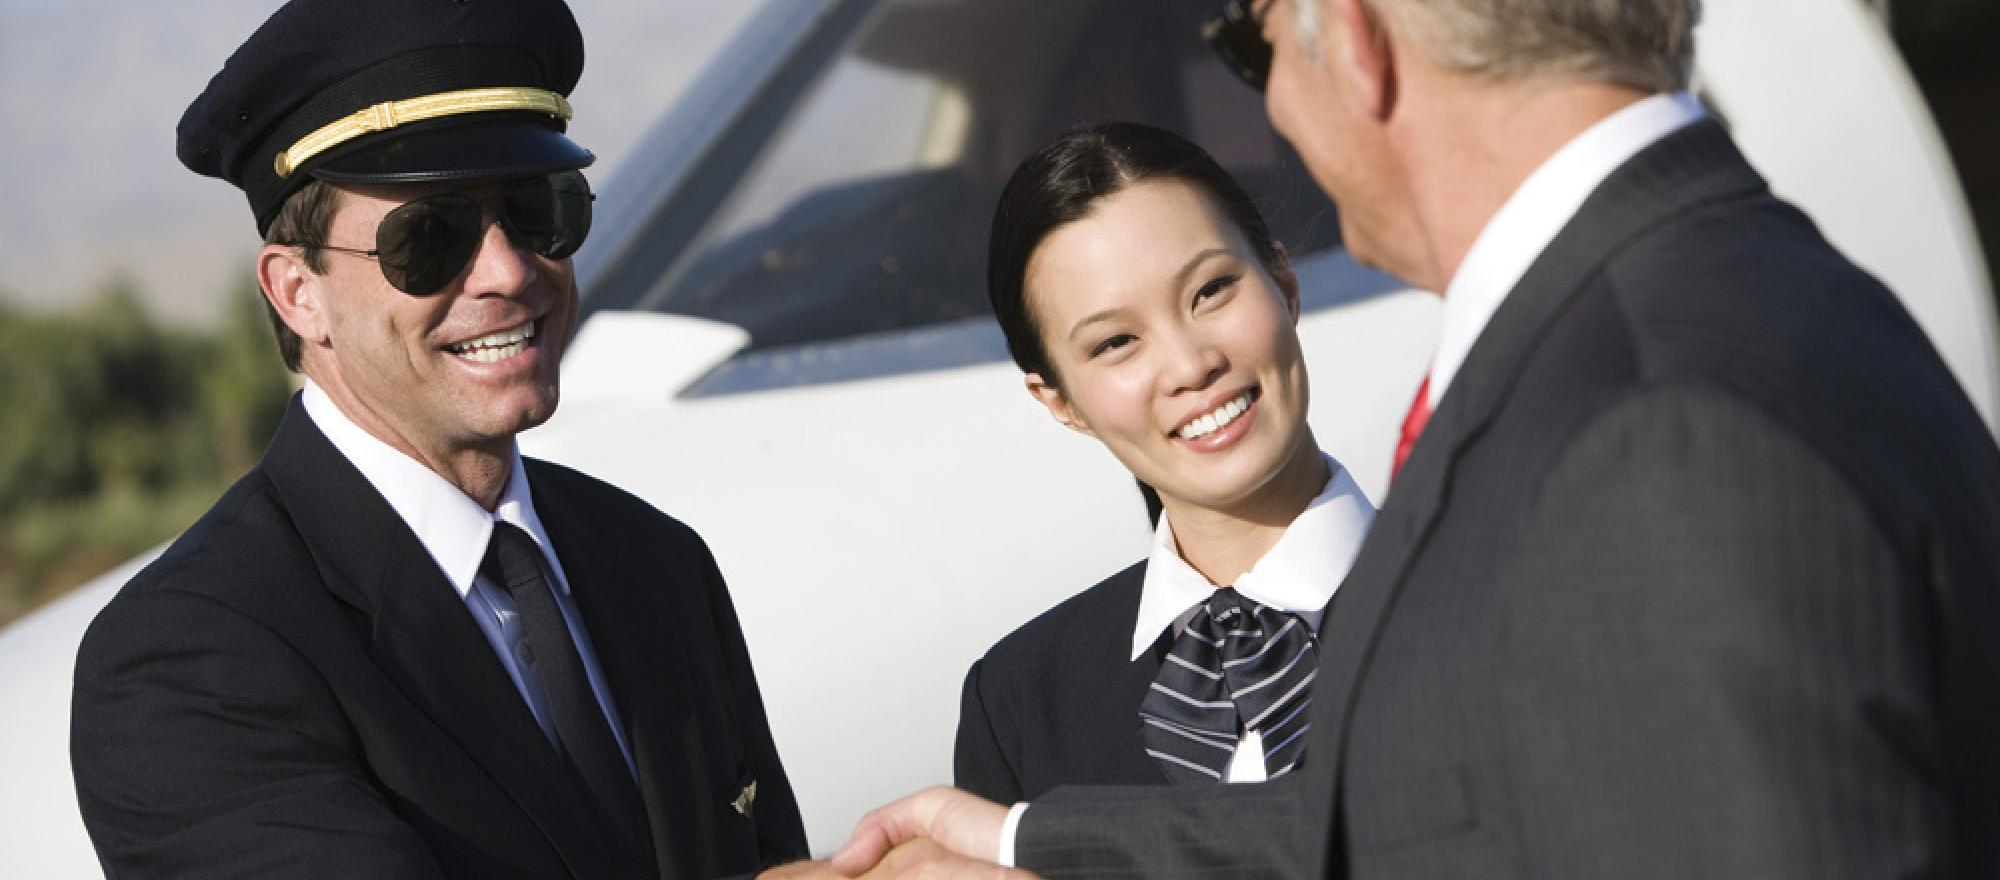 Charter pilots typically say they don't expect tips but always appreciate them.